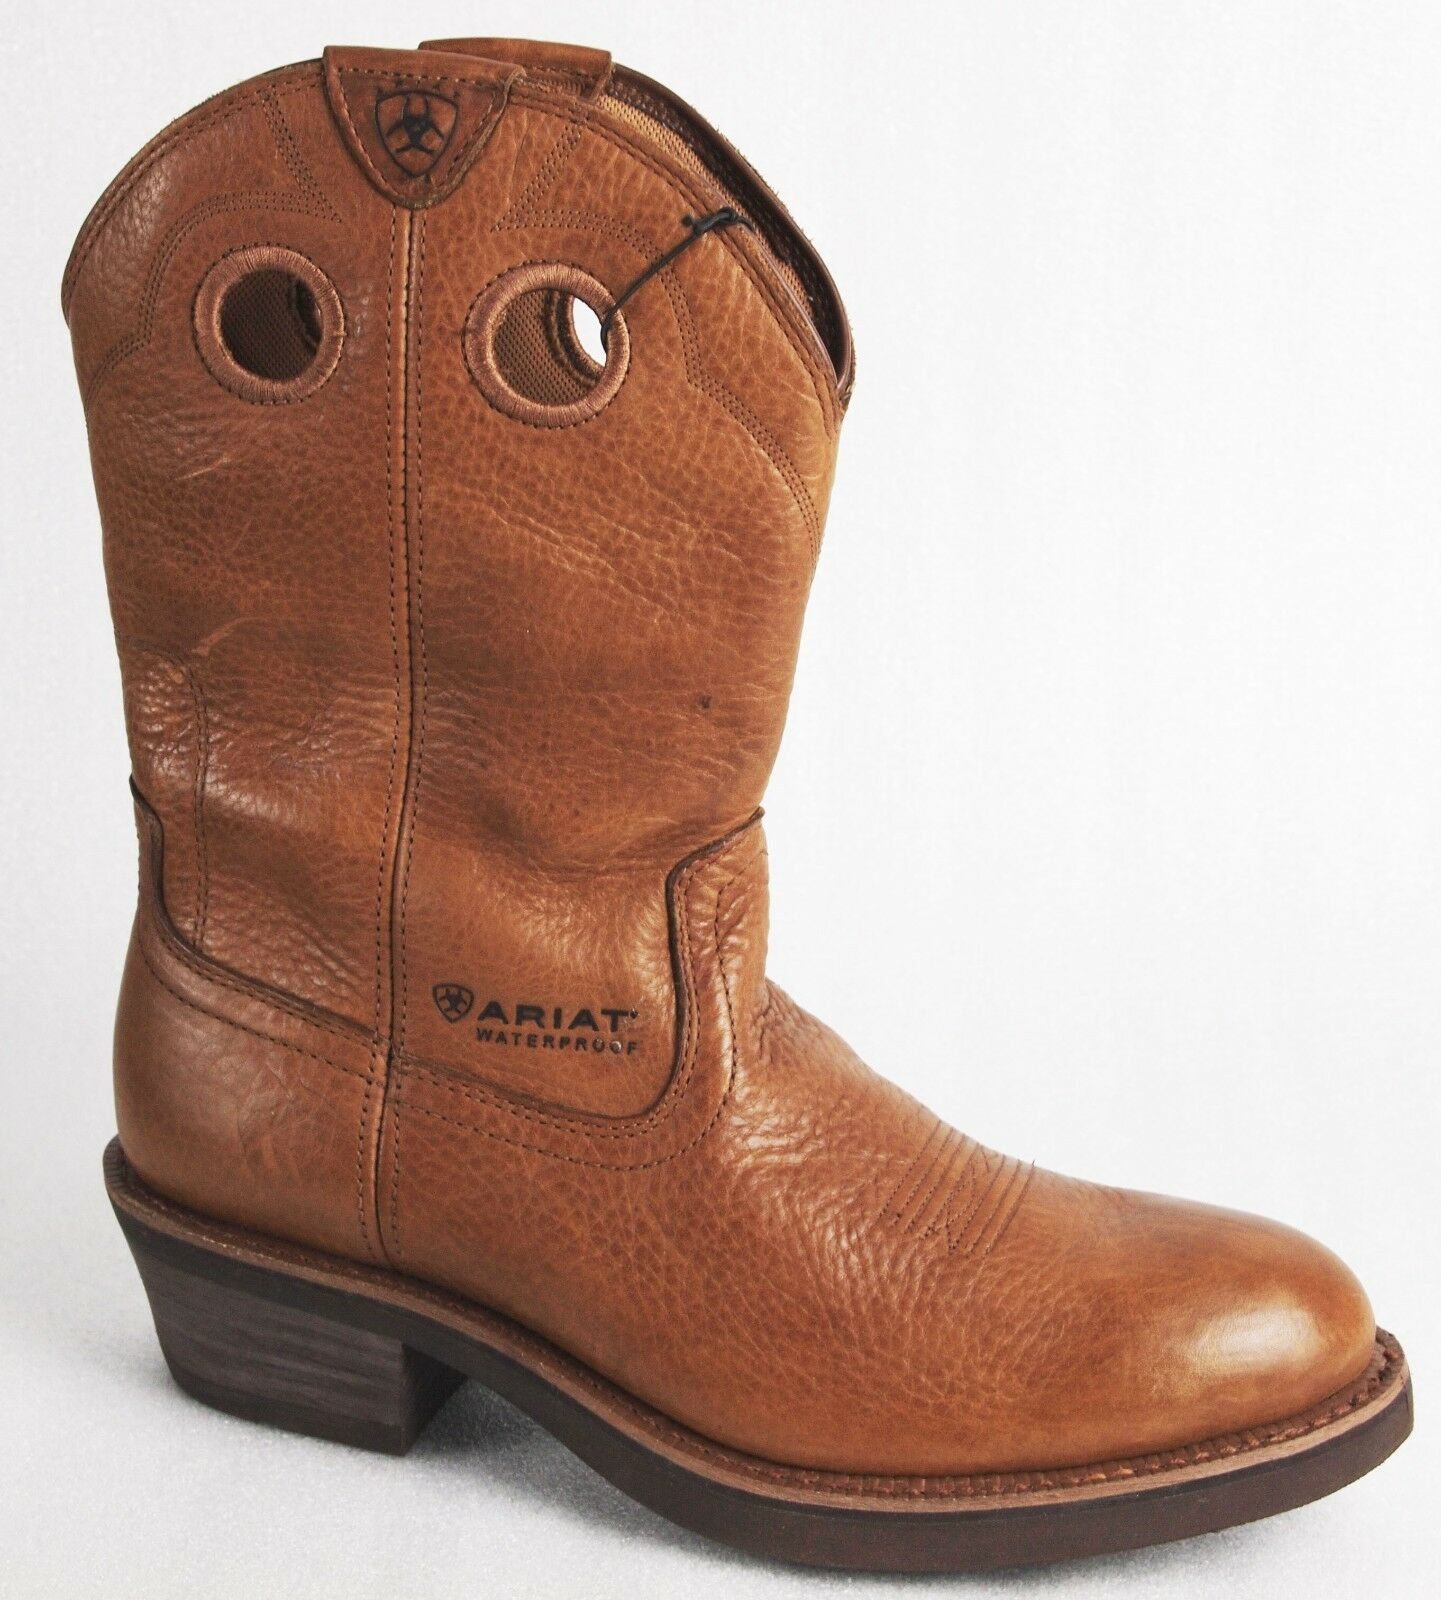 Ariat Trailhand Waterproof Golden Grizzly Cowboy/Western Boots-Stock Clearance